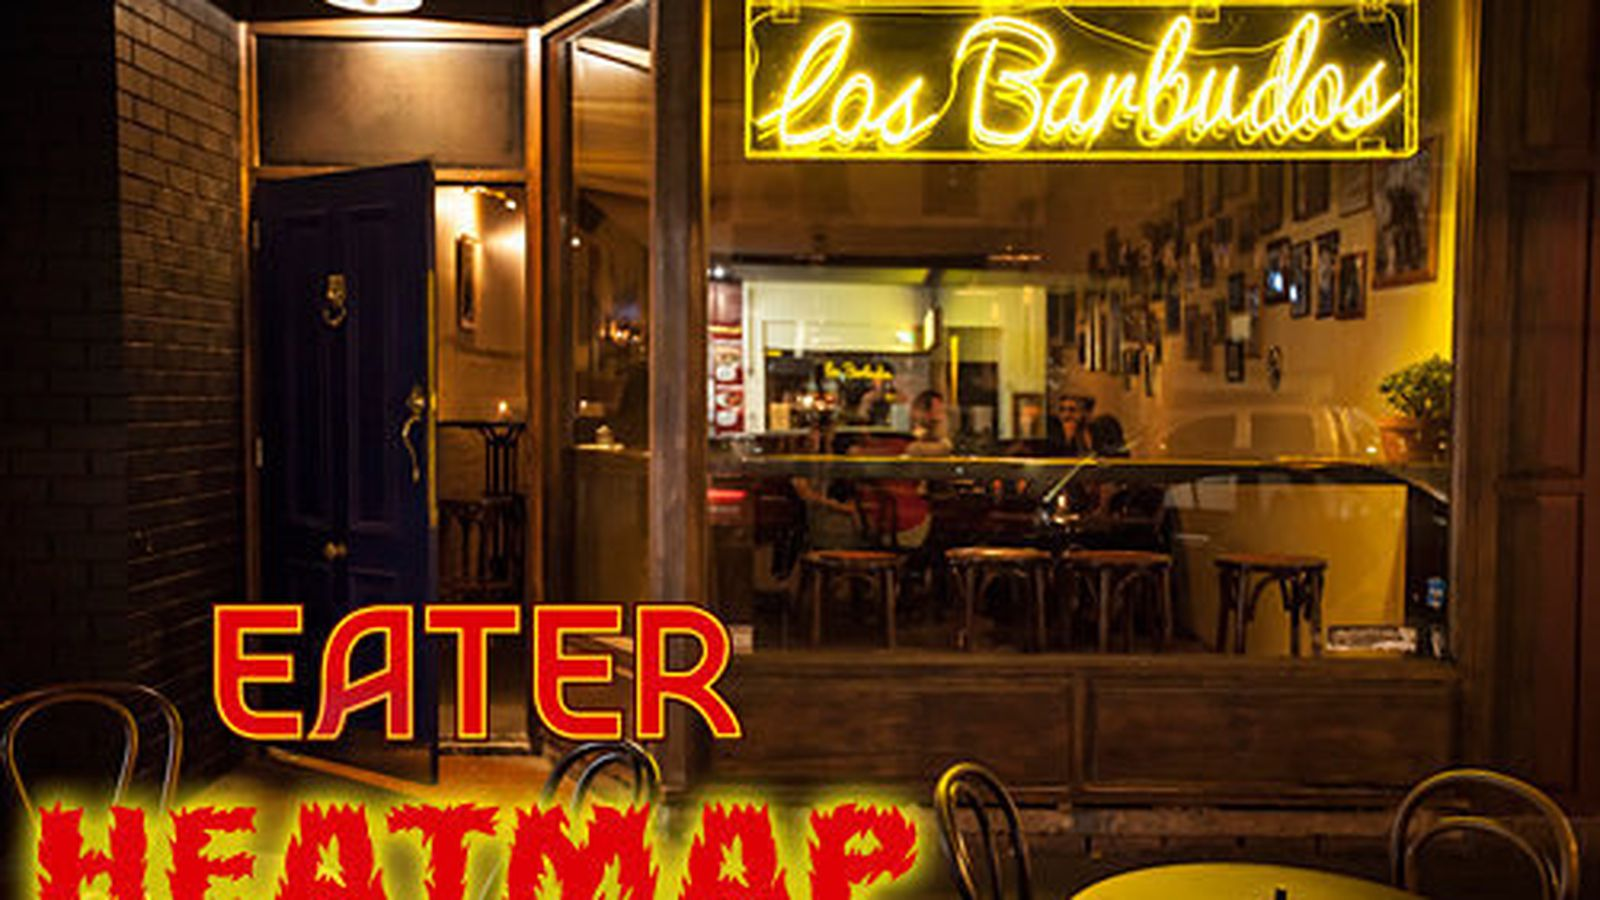 Melbourne Eater - Washington dc eater heat map